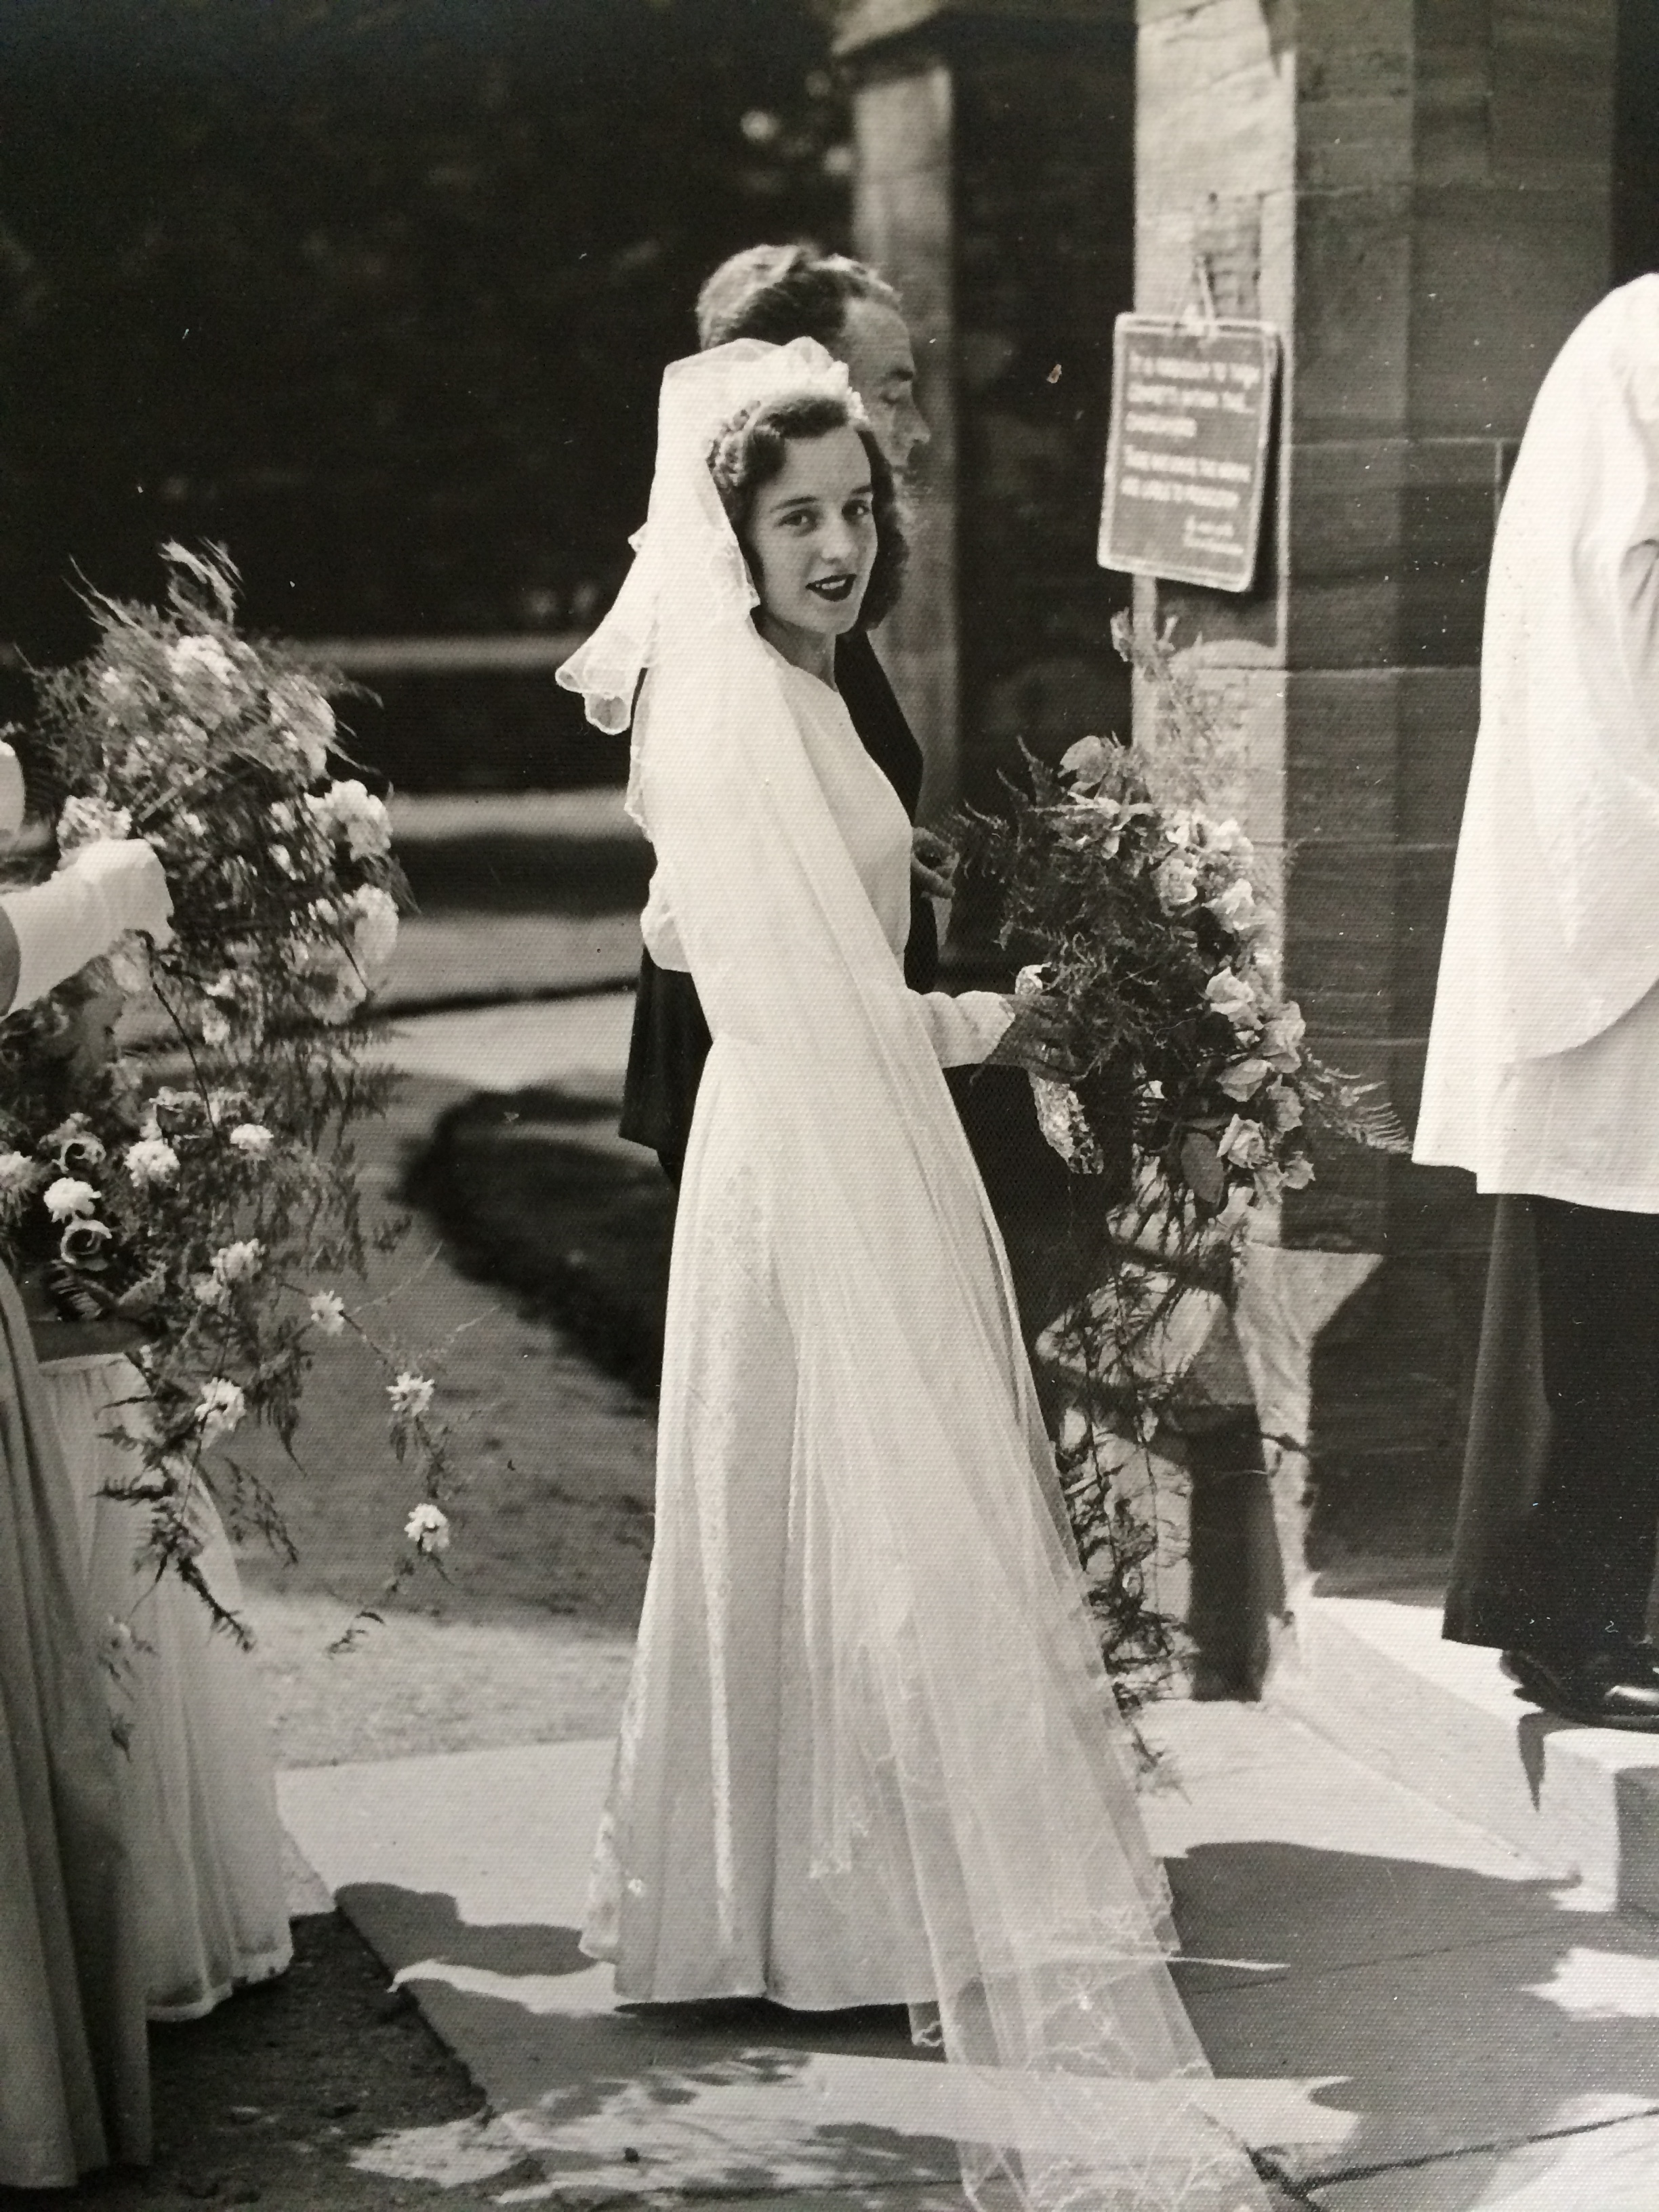 Her Grandmother's Wedding Dress | Wedding Blog